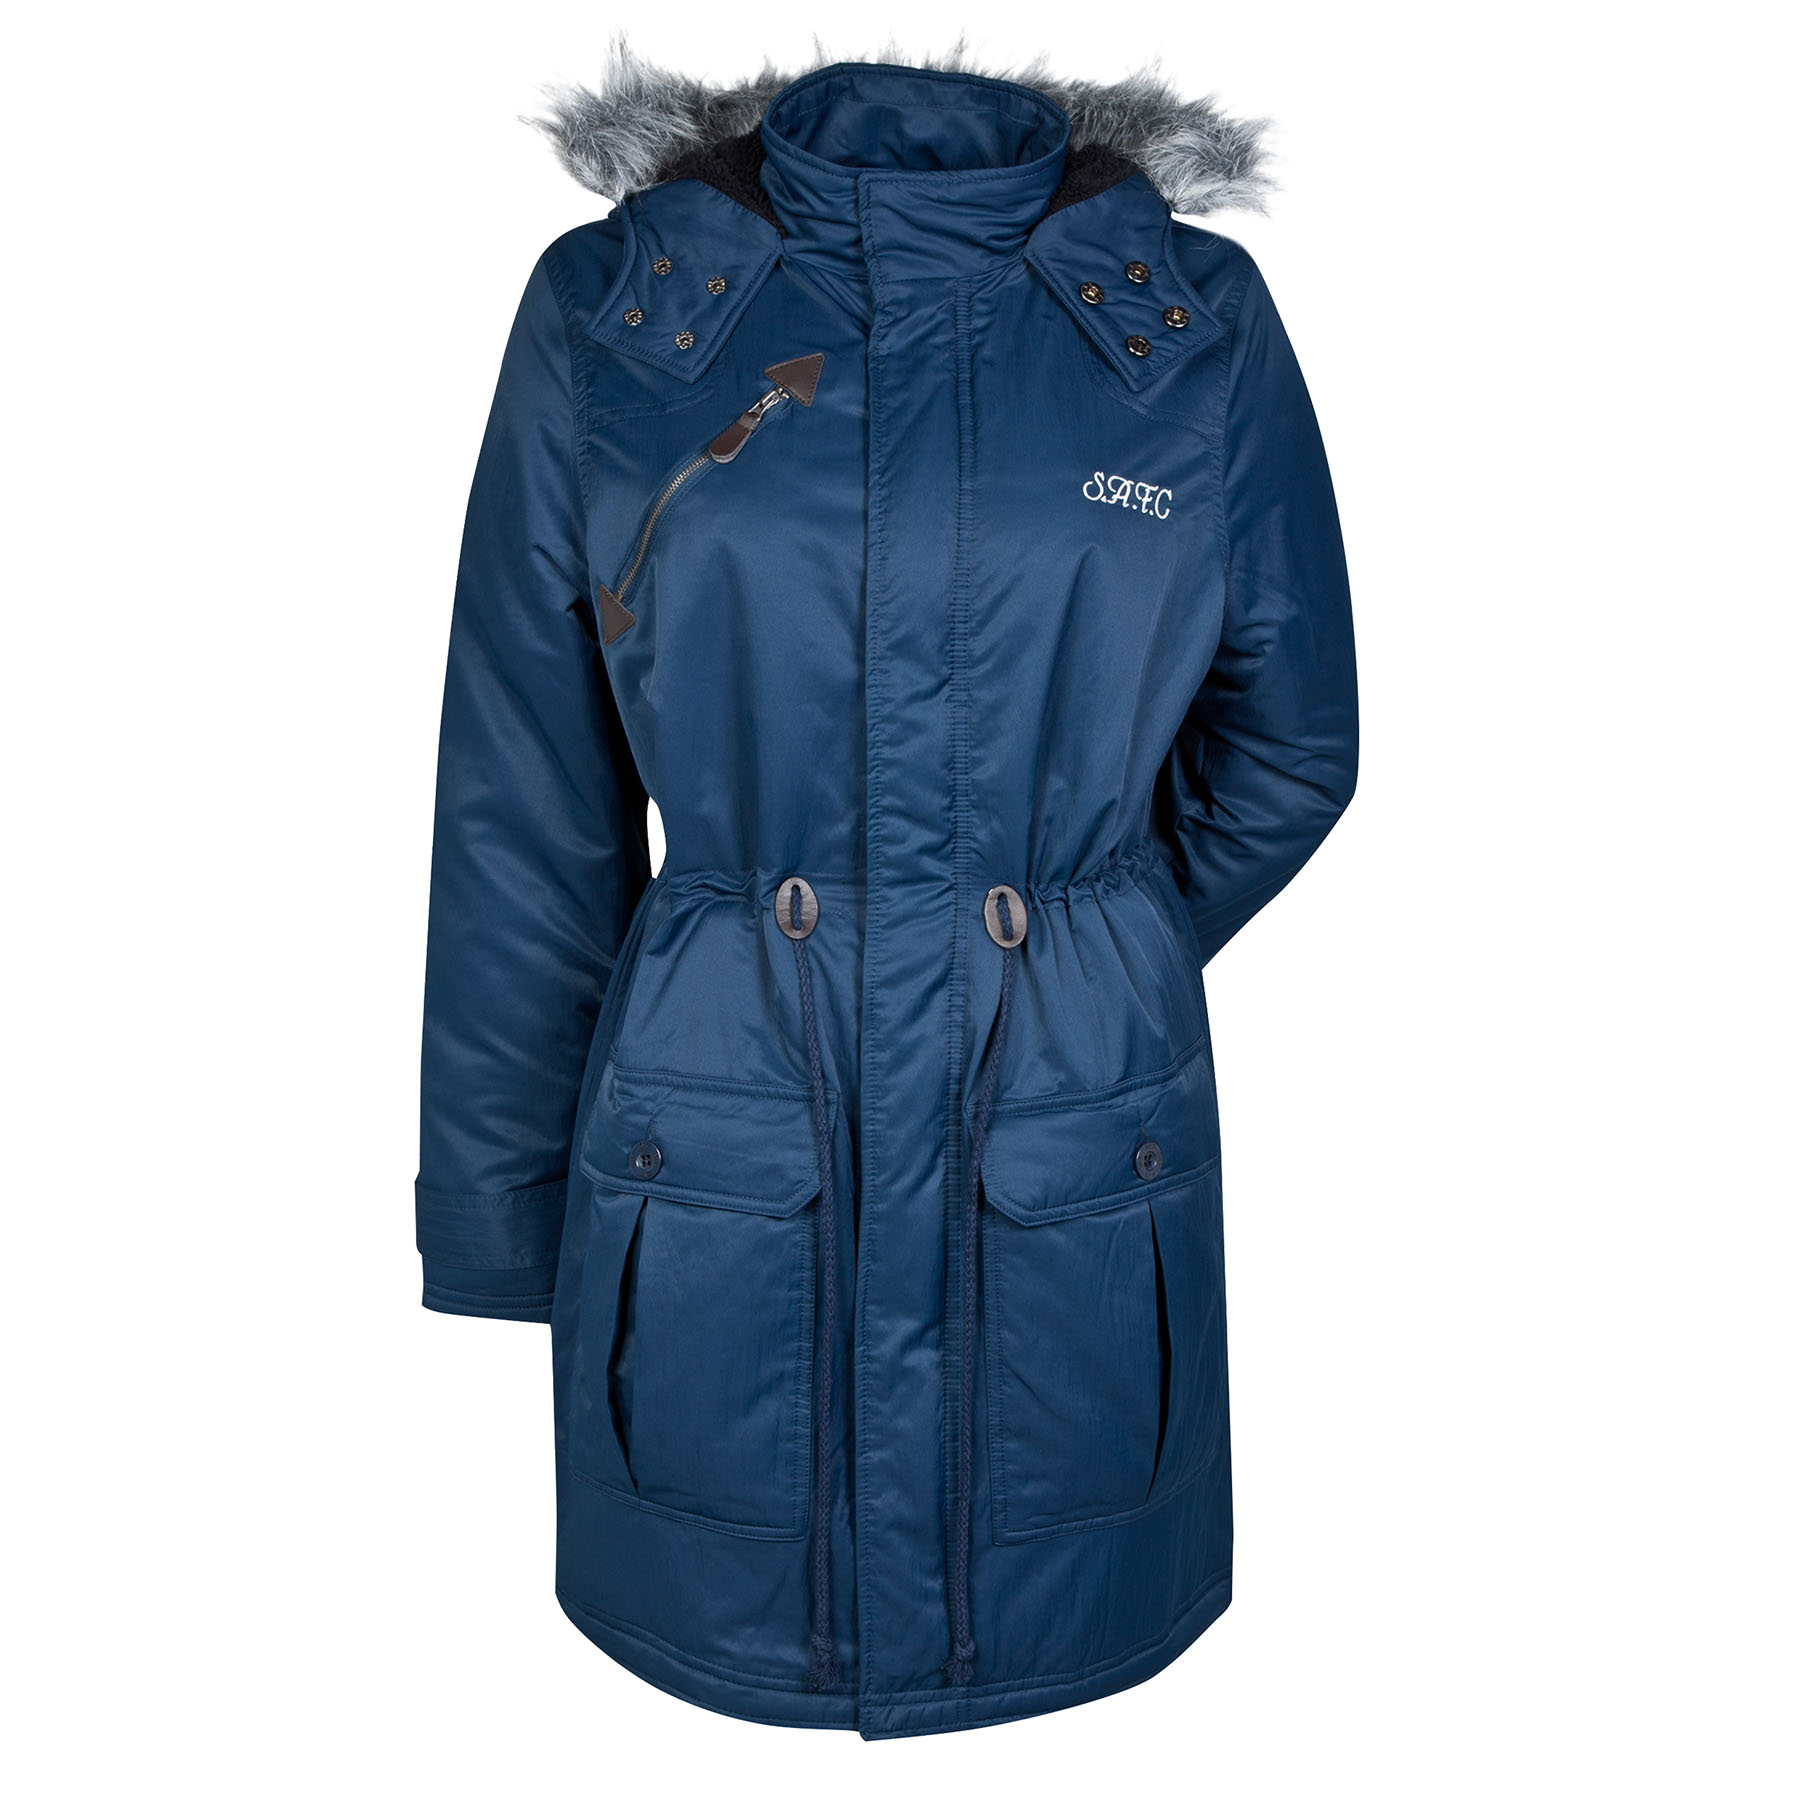 Sunderland Parka Coat - Navy - Womens